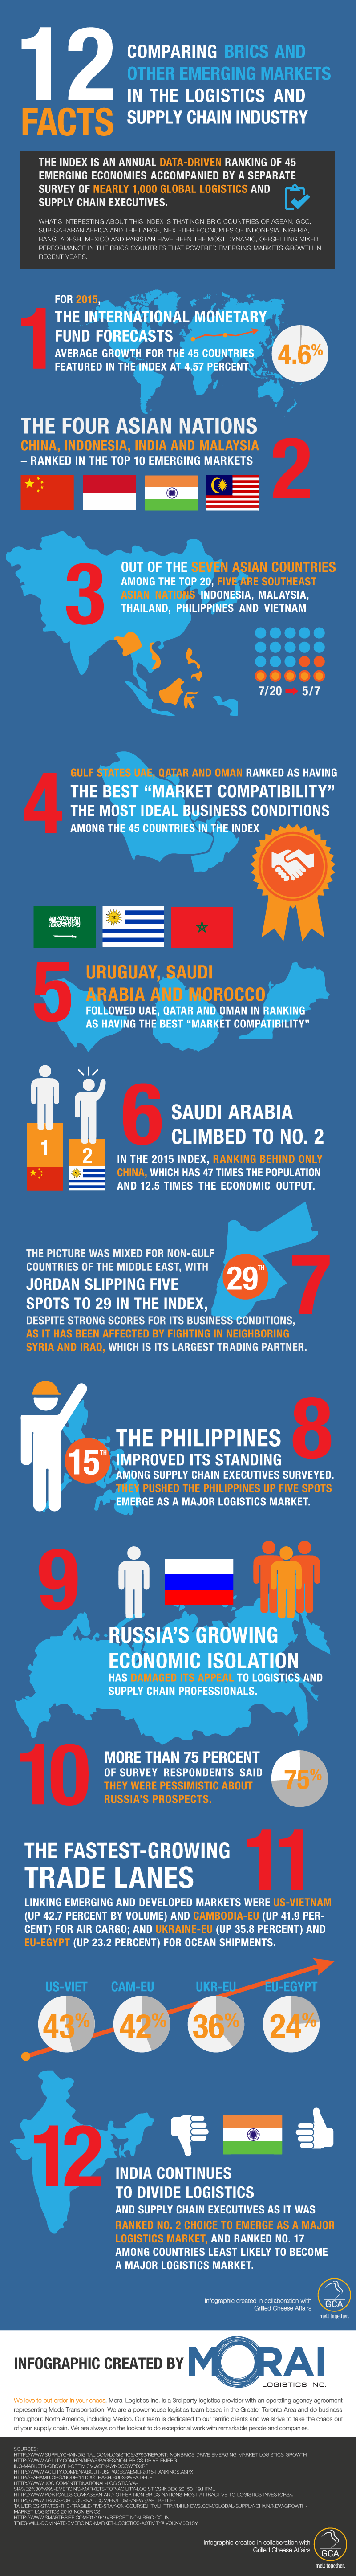 Morai-Logistics-Infographic-12-Facts-Comparing-BRIC-in-the-Logistics-Supply-Chain